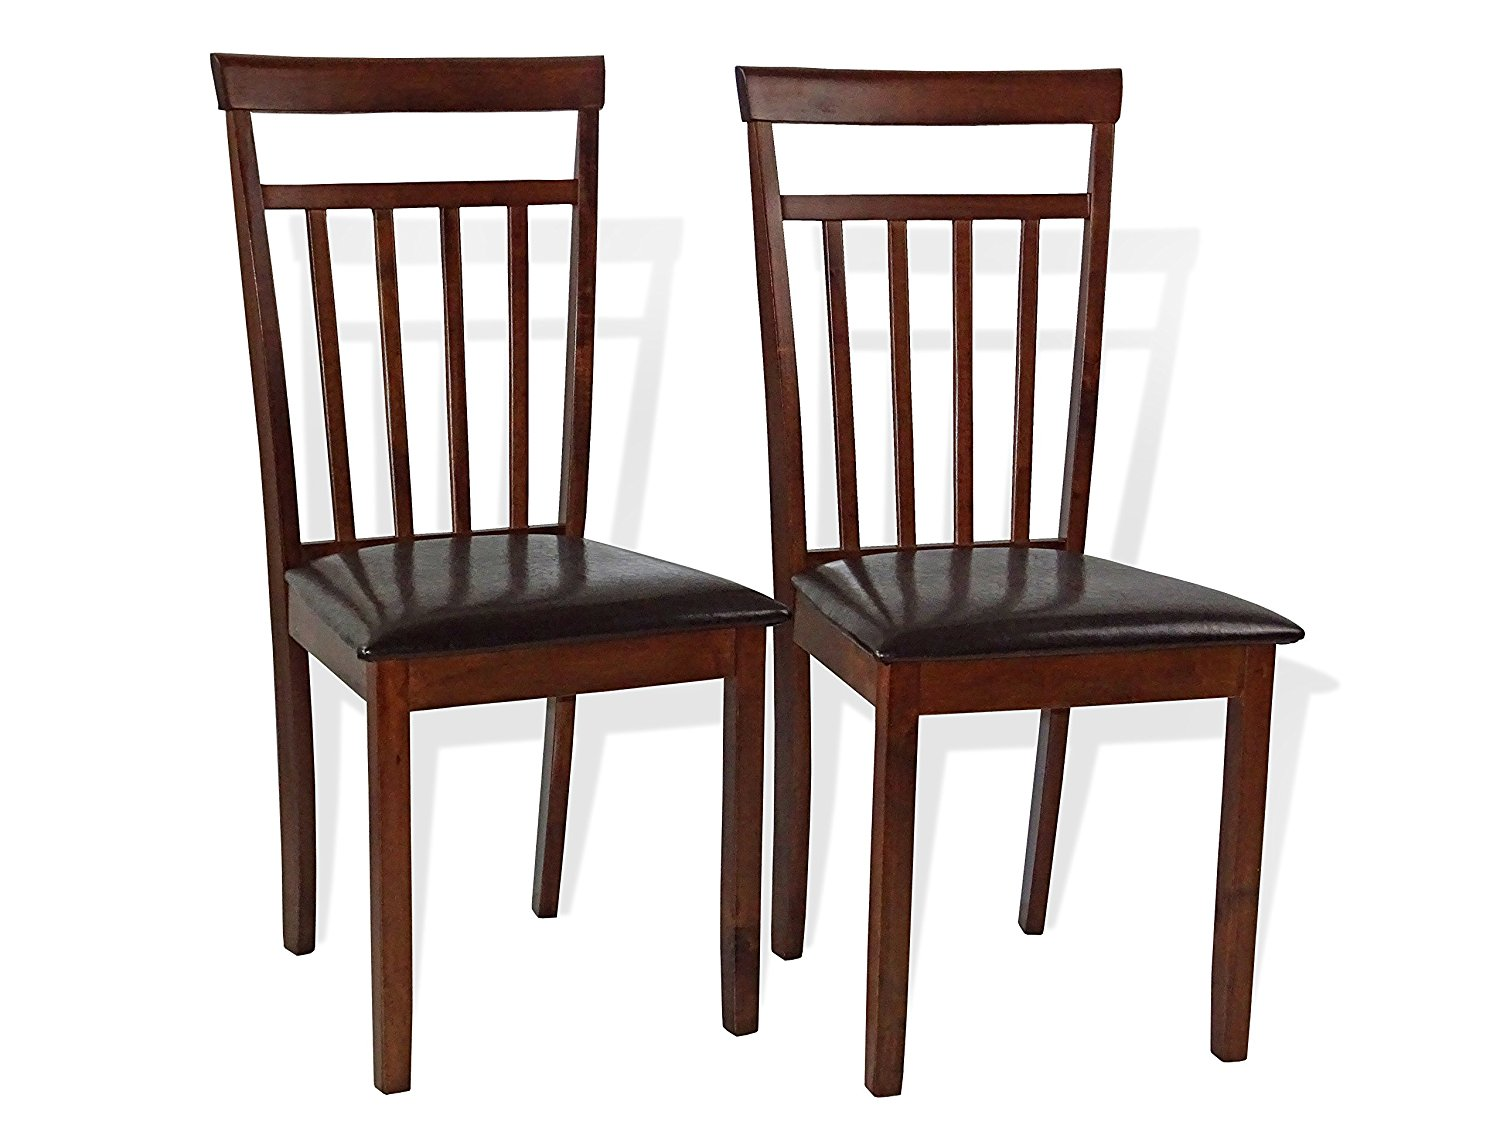 Plastic Dining Chairs Hamptons Plastic Dining Chair Rattan Usa